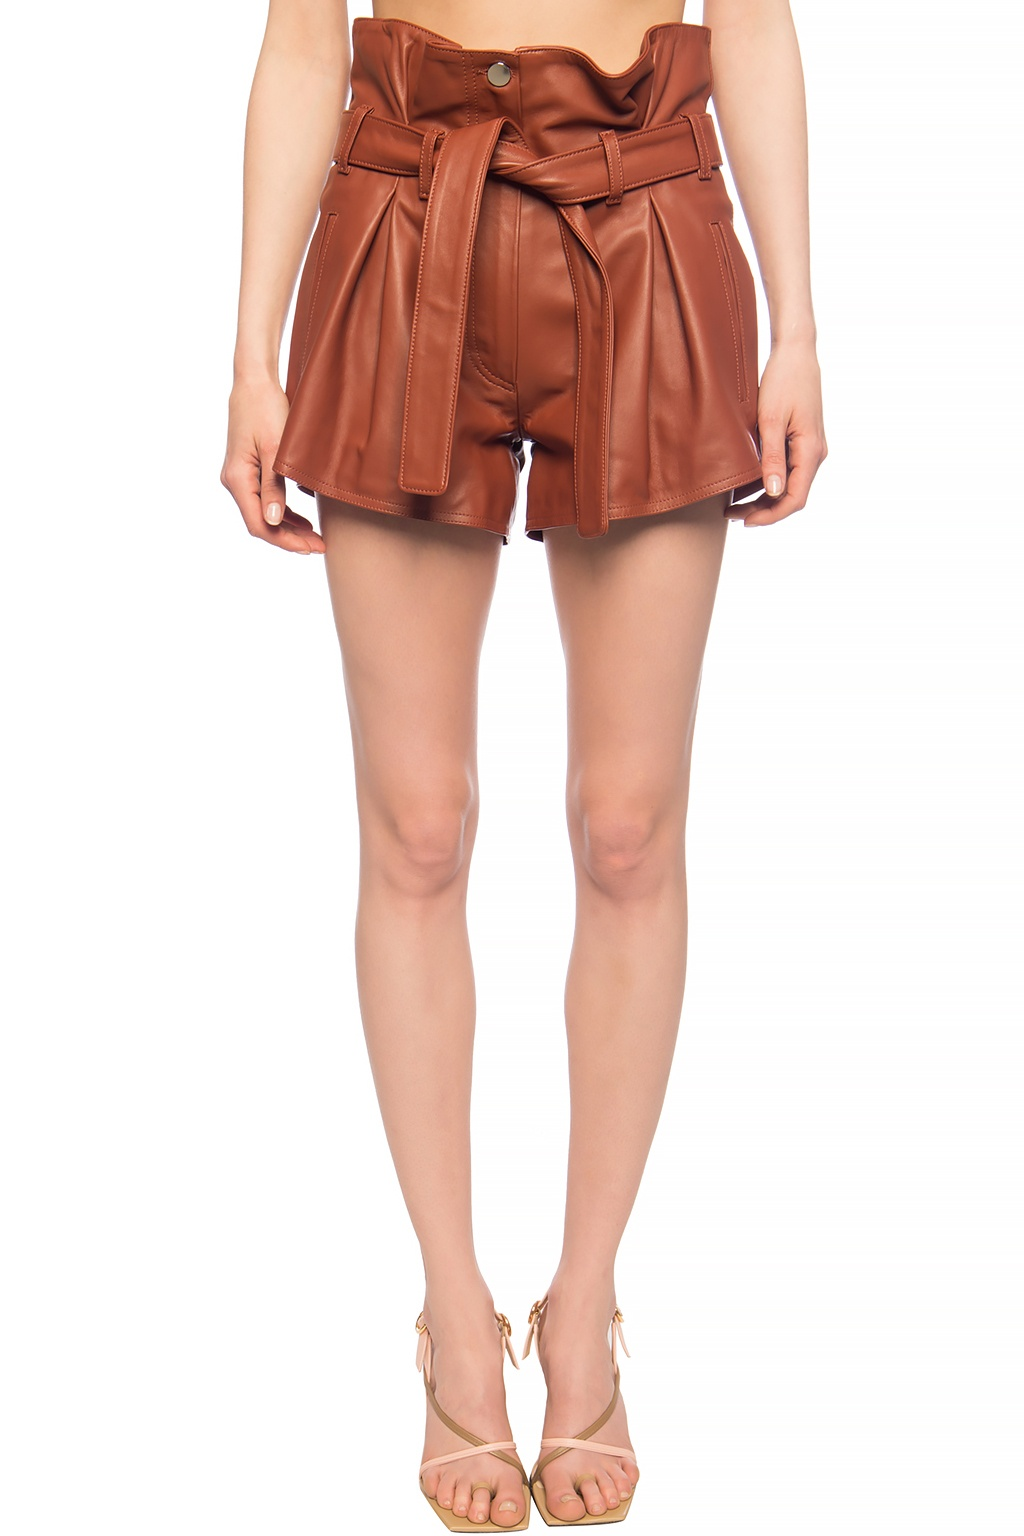 The Attico High-waisted leather shorts